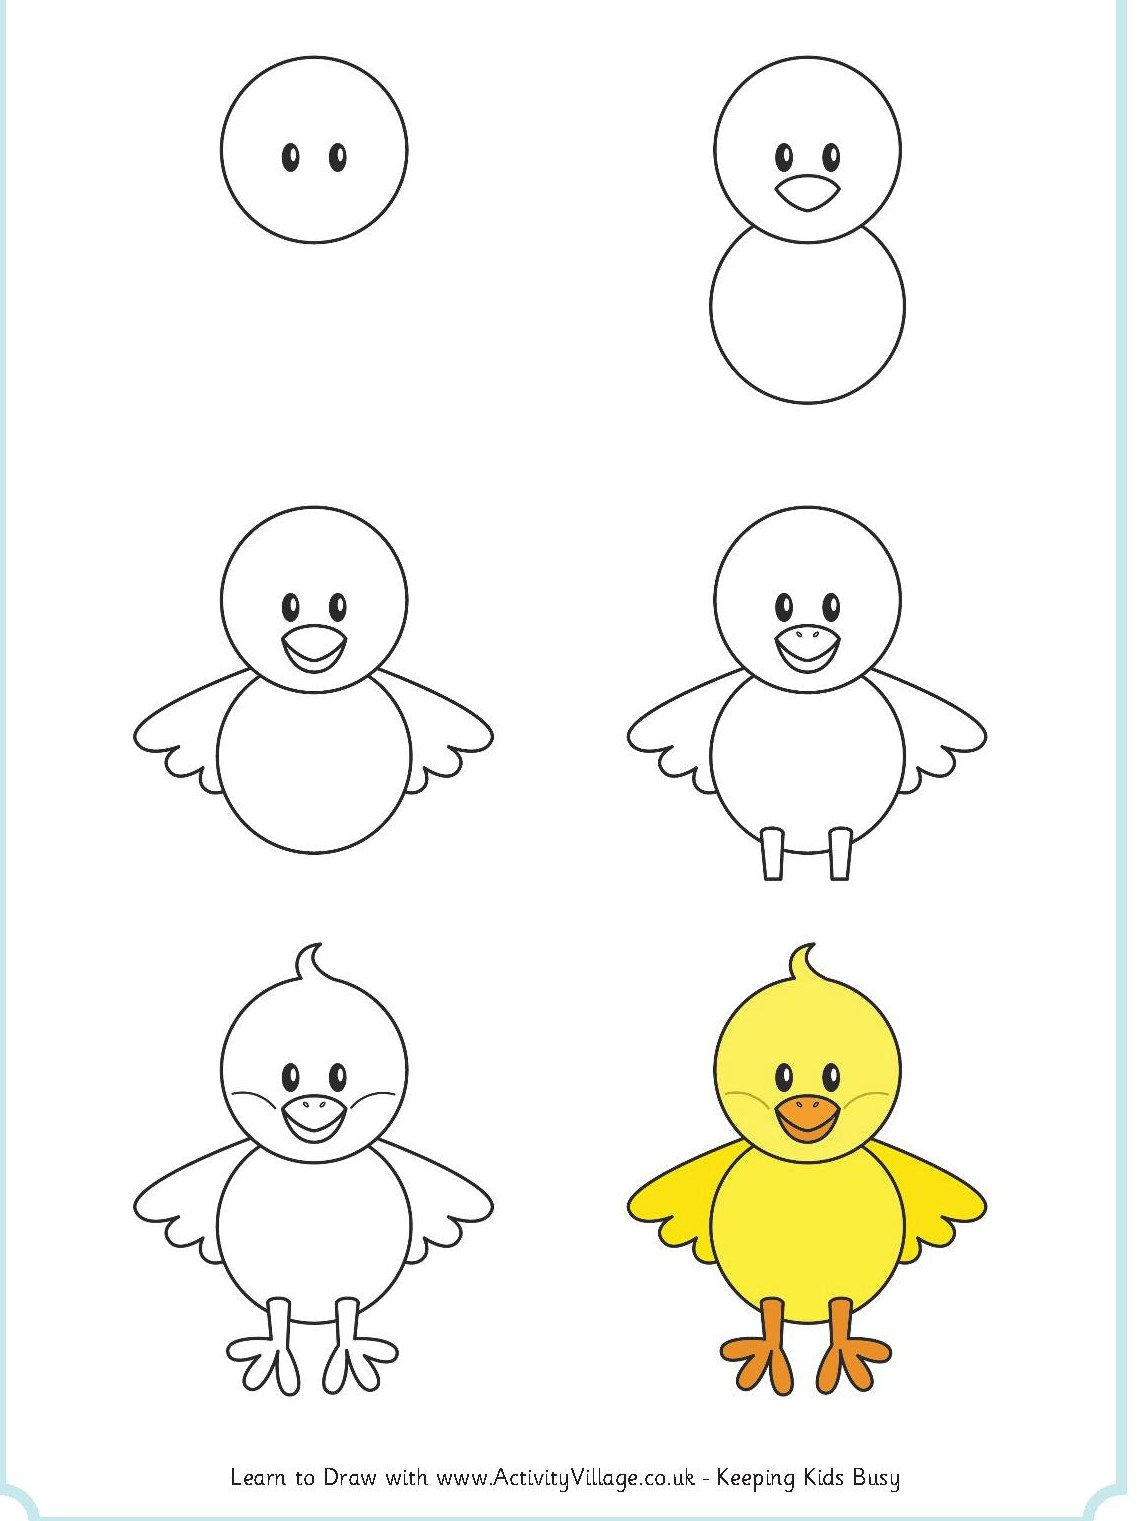 Superior dessiner un ours maternelle 1 learn to draw a - Dessiner un ours en maternelle ...